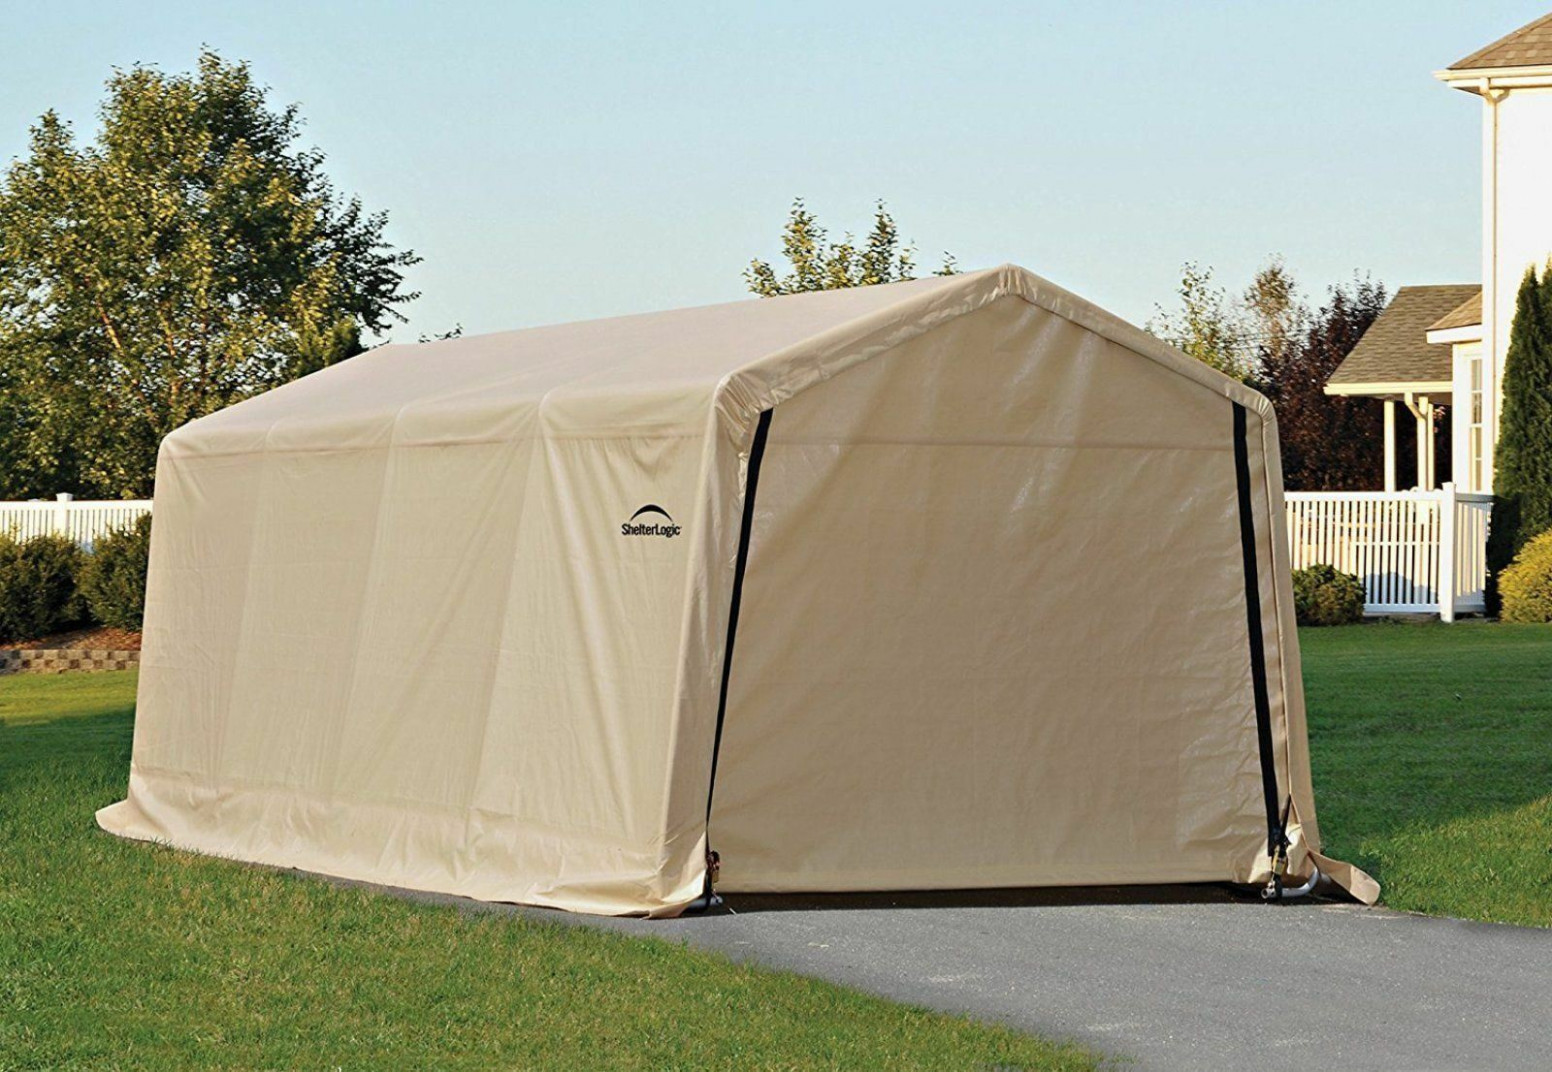 Carport Canopy Shelter Tent Auto Garage Truck Boat Enclosure 7x7 Shed Portable Carport Tent To Buy